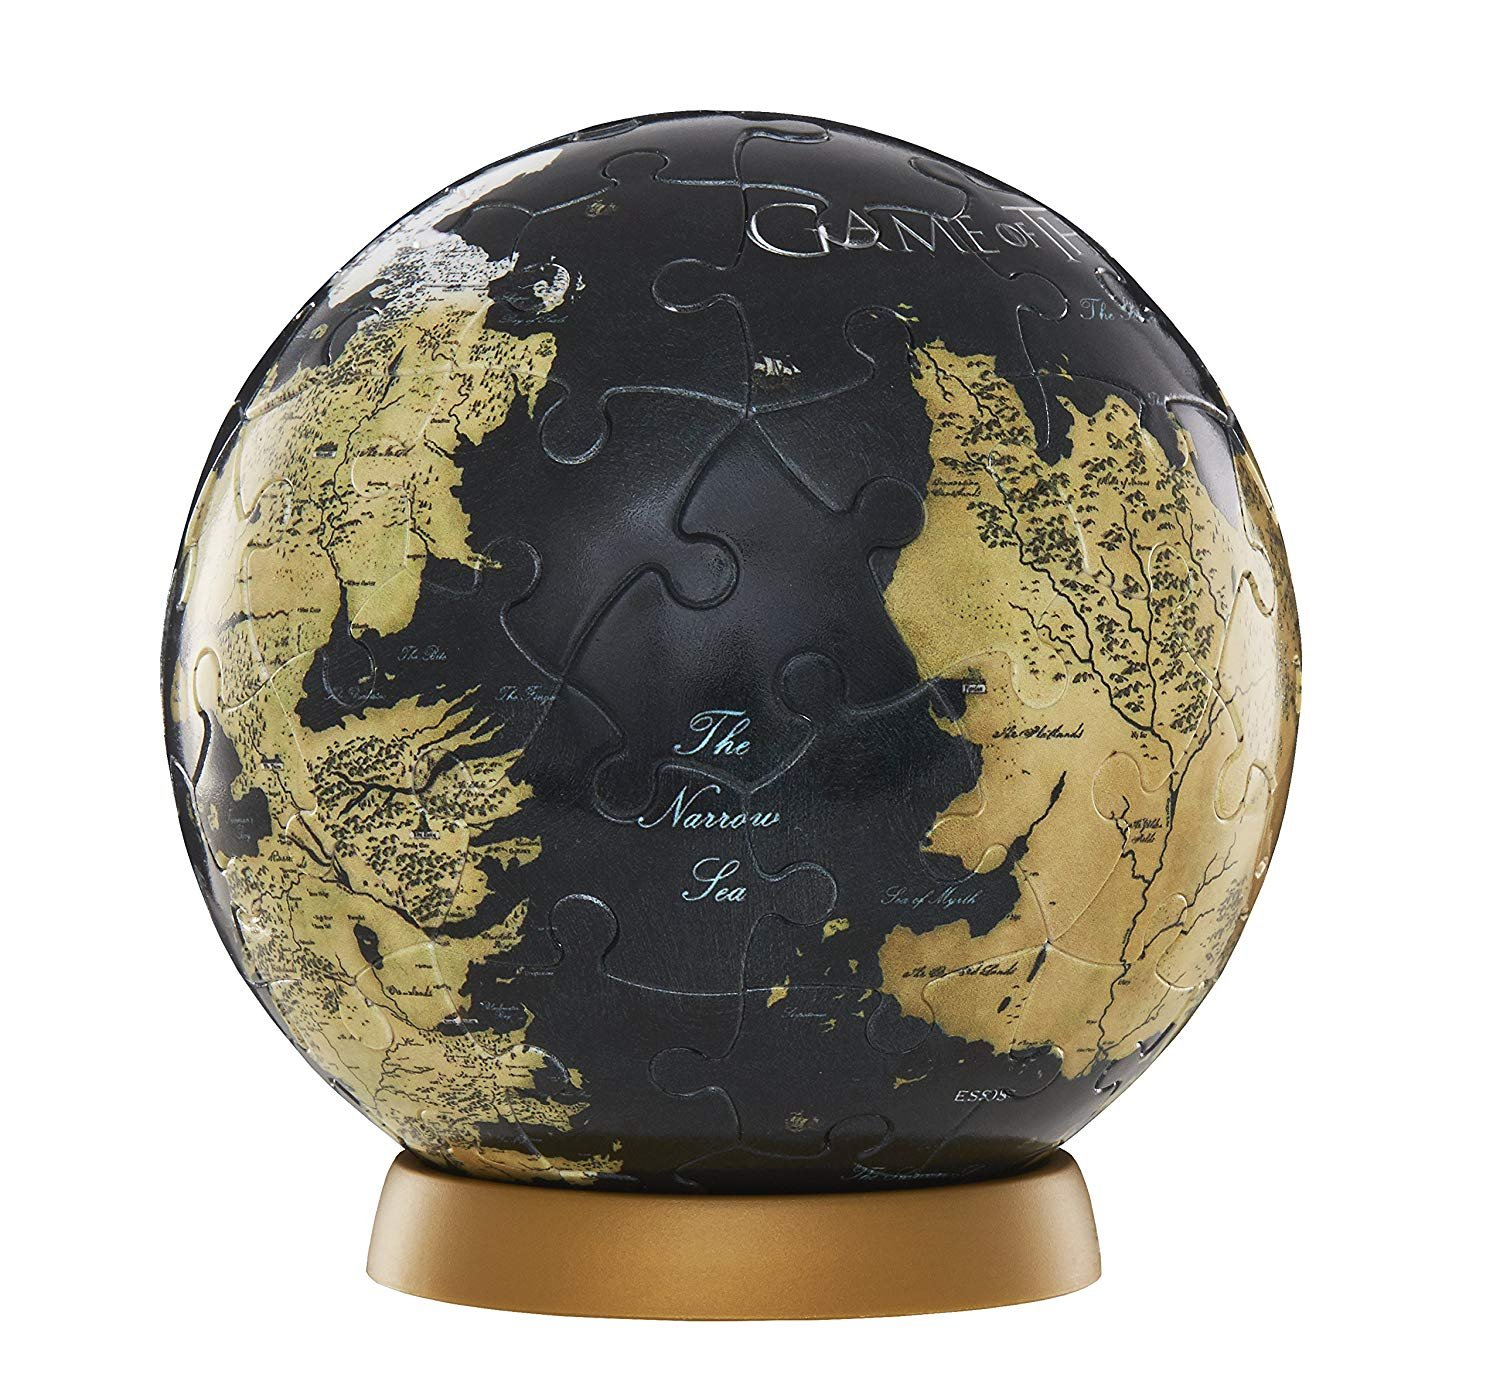 4D Cityscapes 3D Westeros and Essos Globe Puzzle